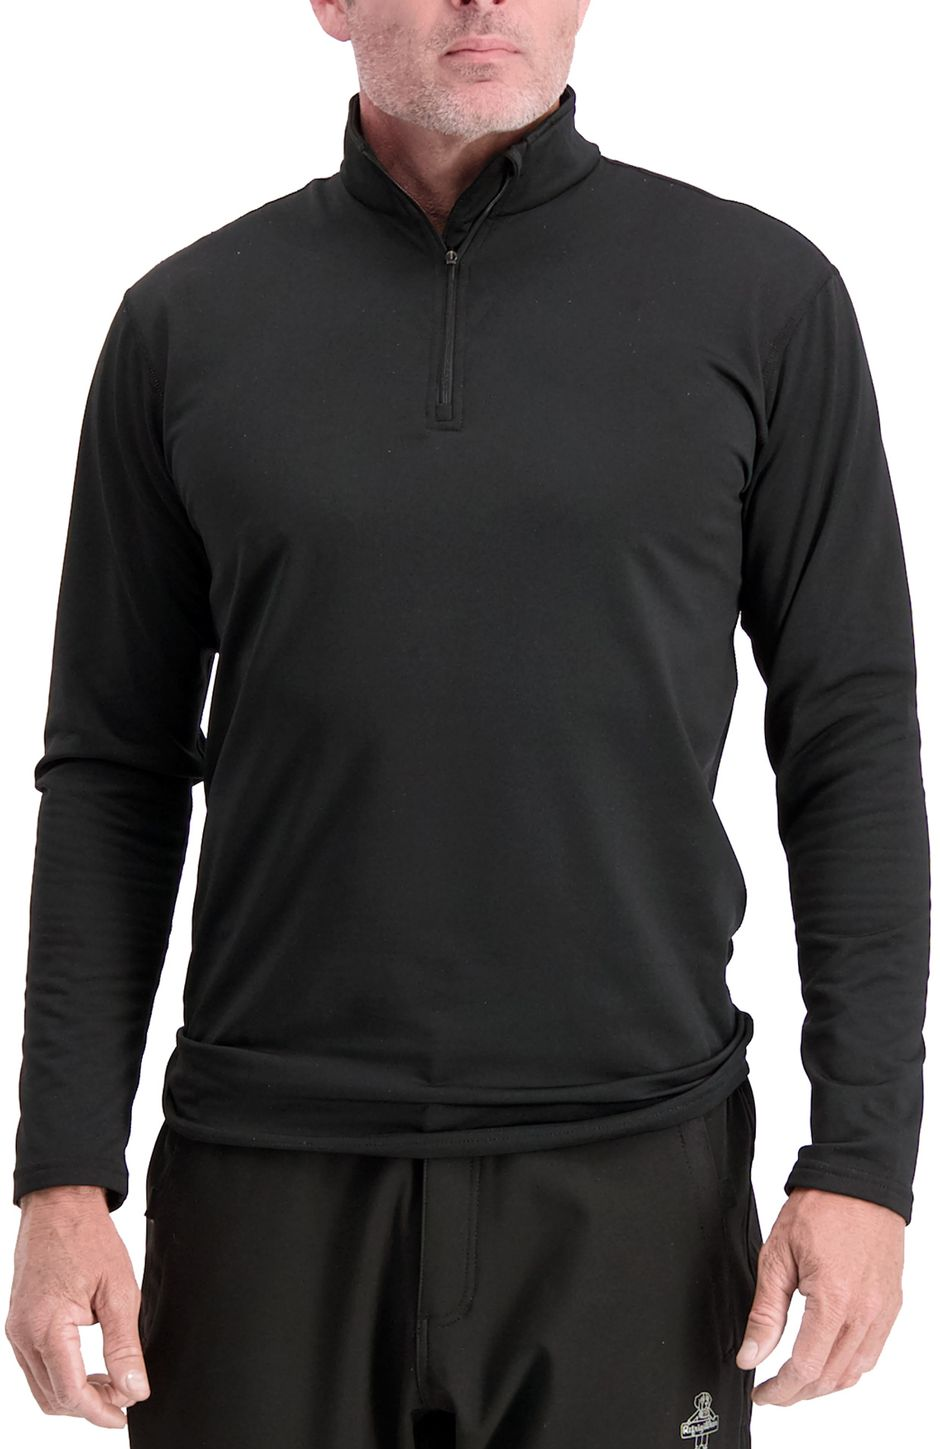 RefrigiWear 088T Cold Weather Base Layer Shirt Example